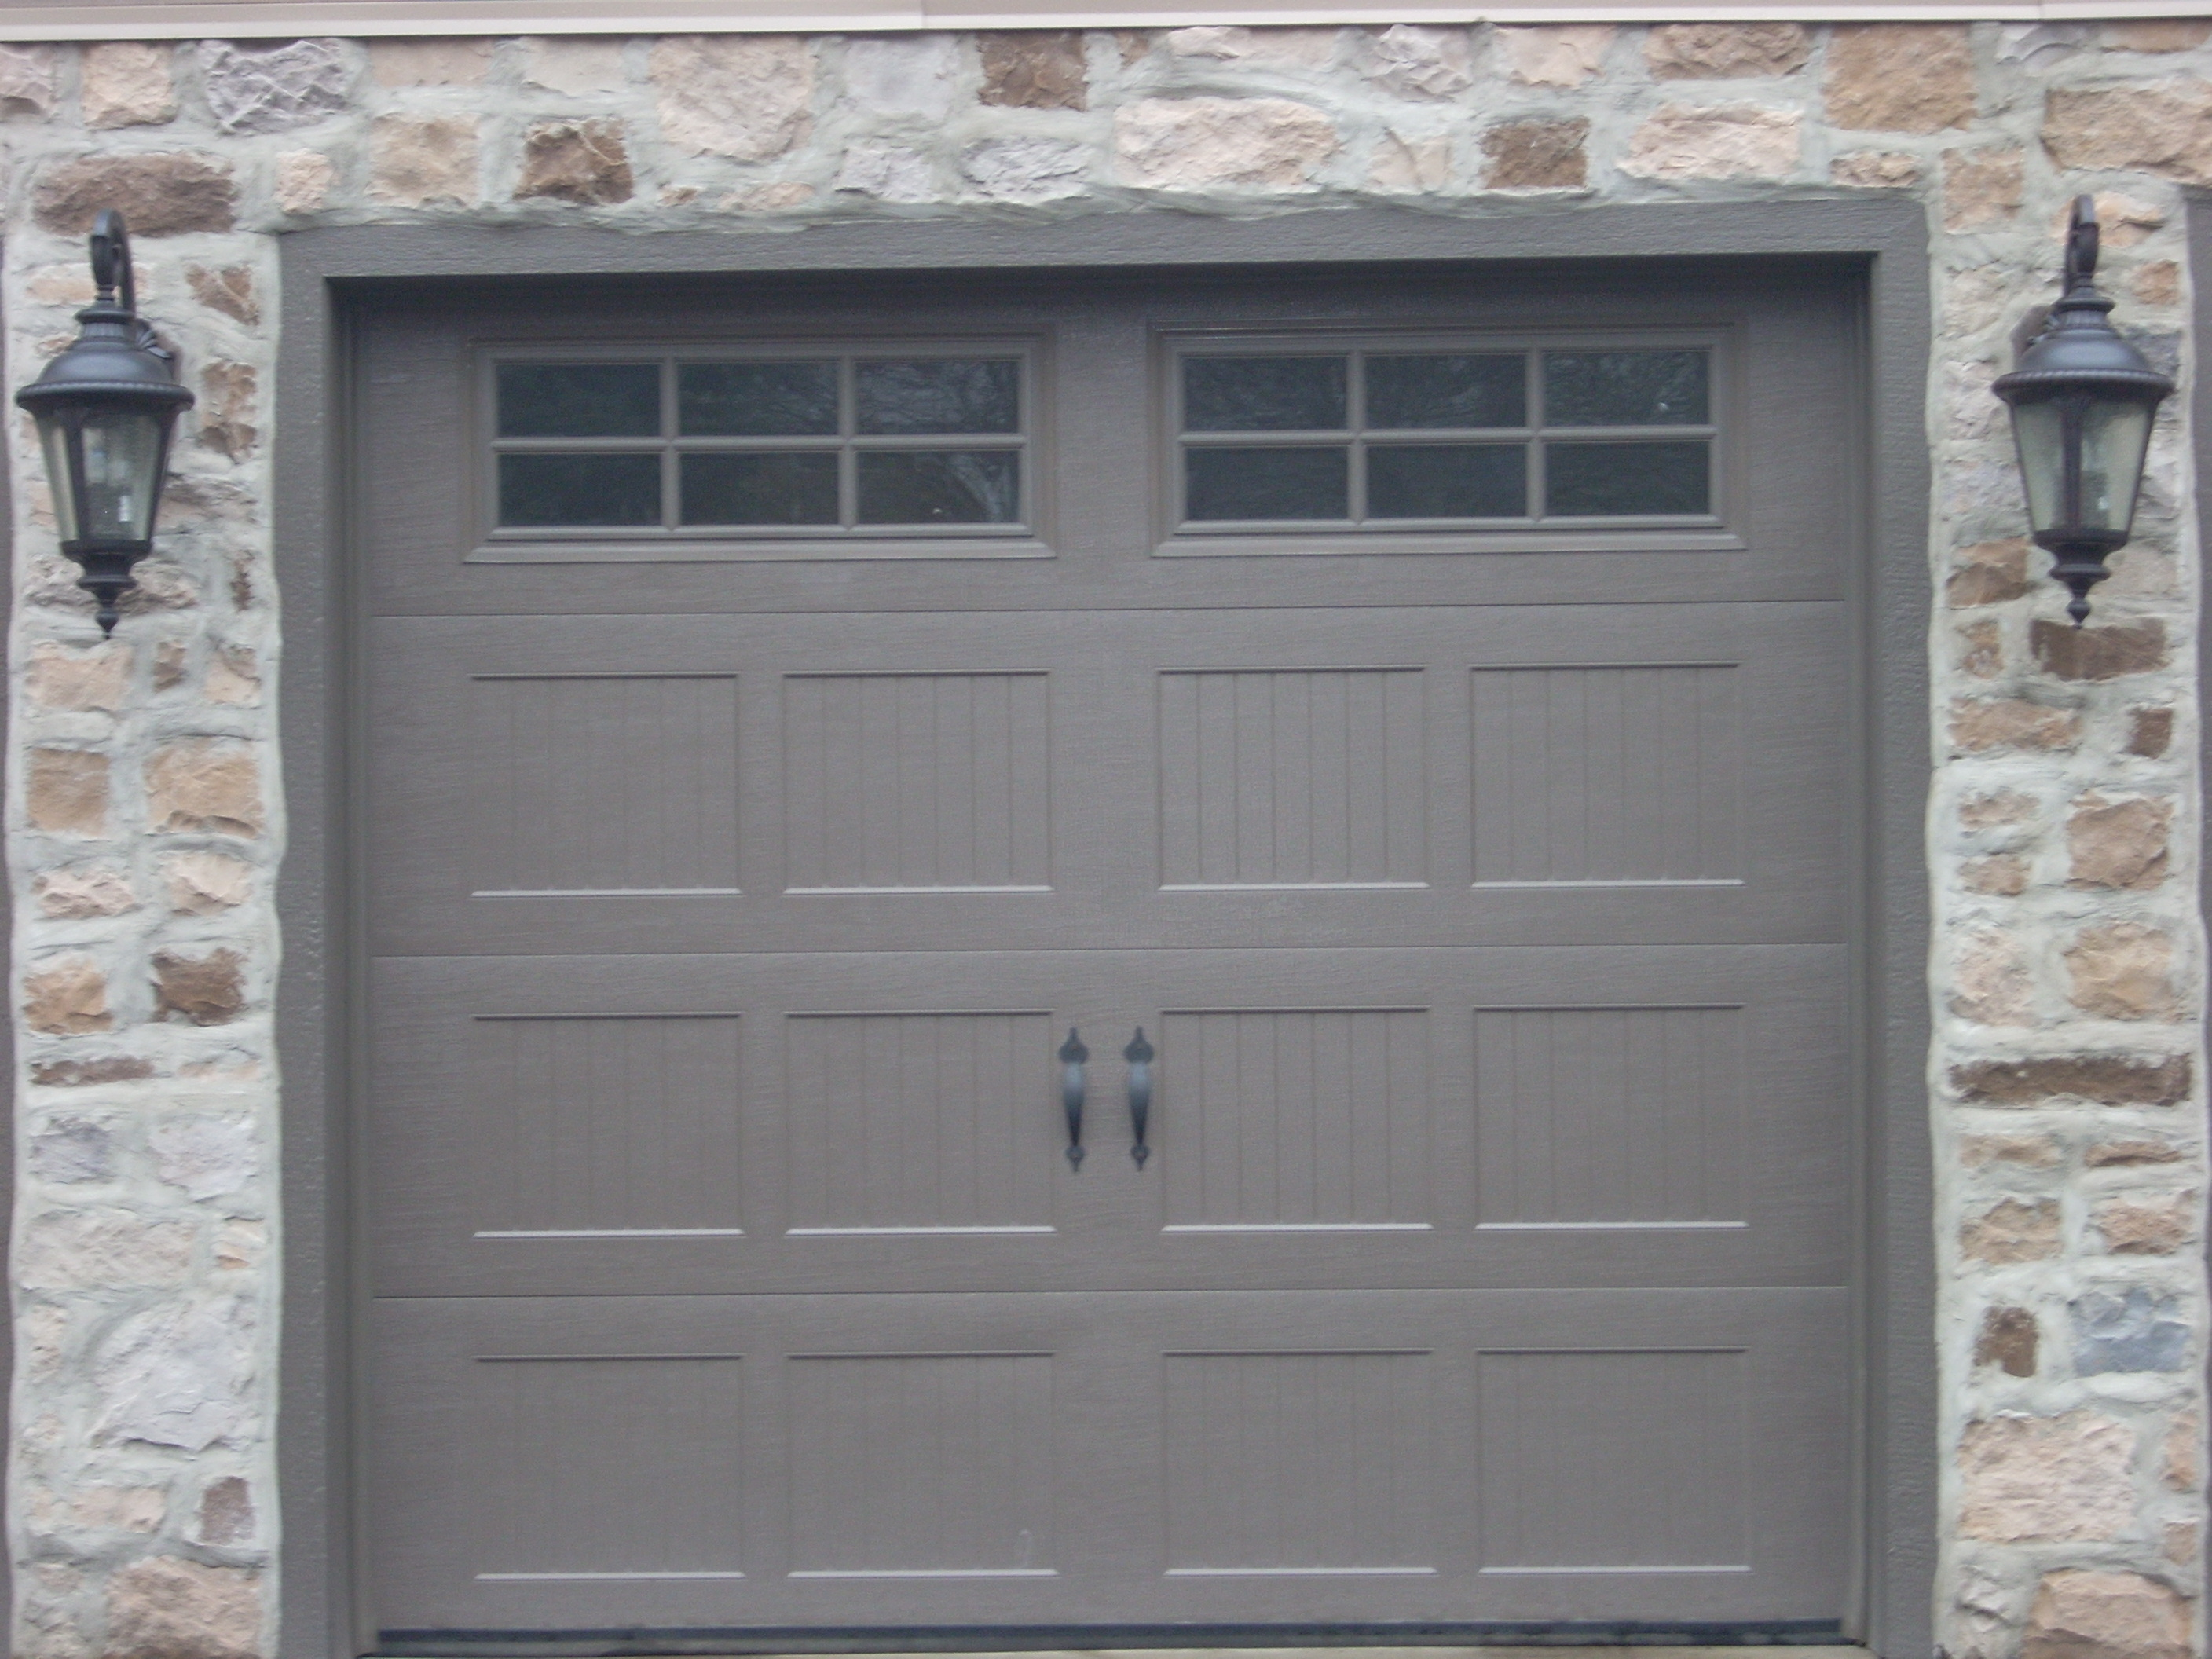 Wayne doors classic steel 8300 sonoma ranch panel for Wayne dalton garage doors